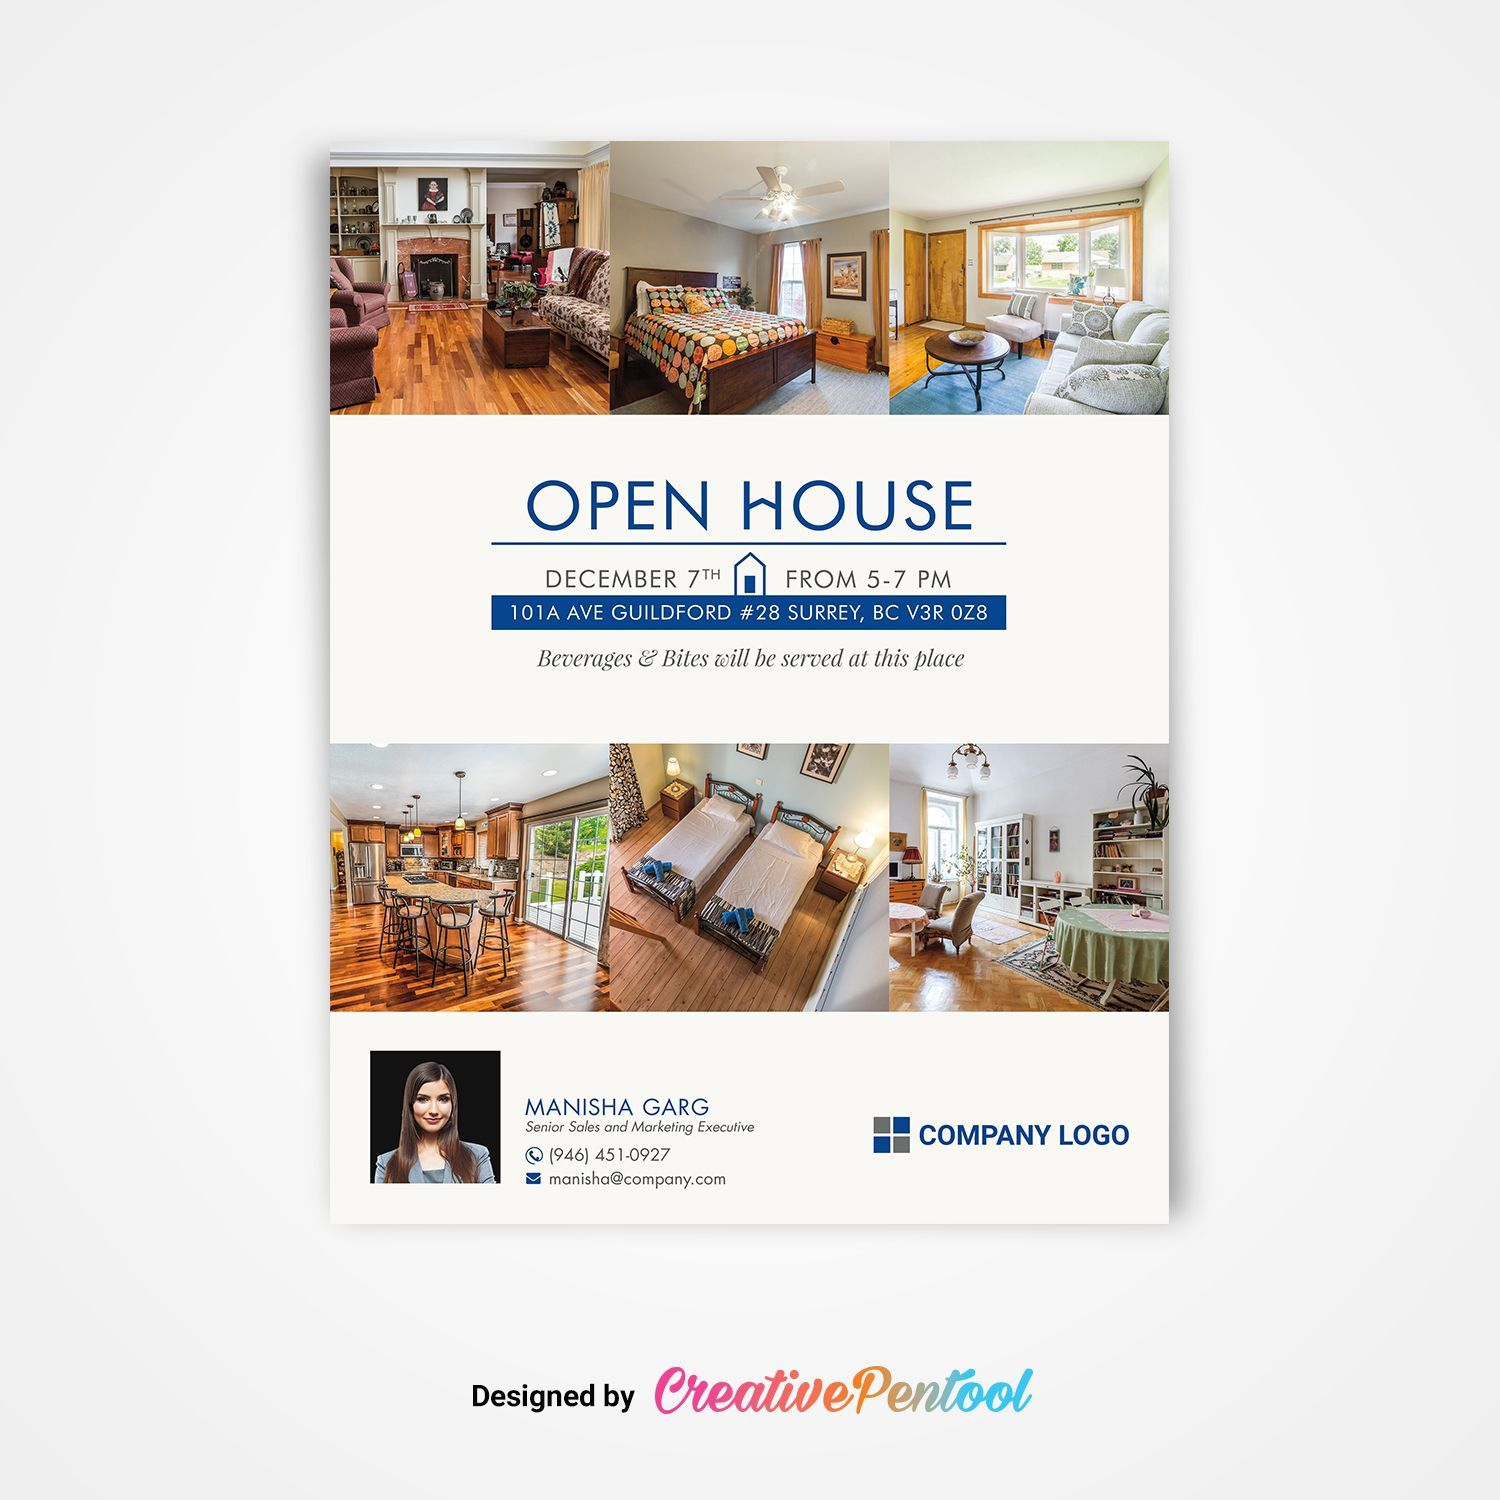 002 Sensational Open House Flyer Template Word High Definition  Free Microsoft SchoolFull